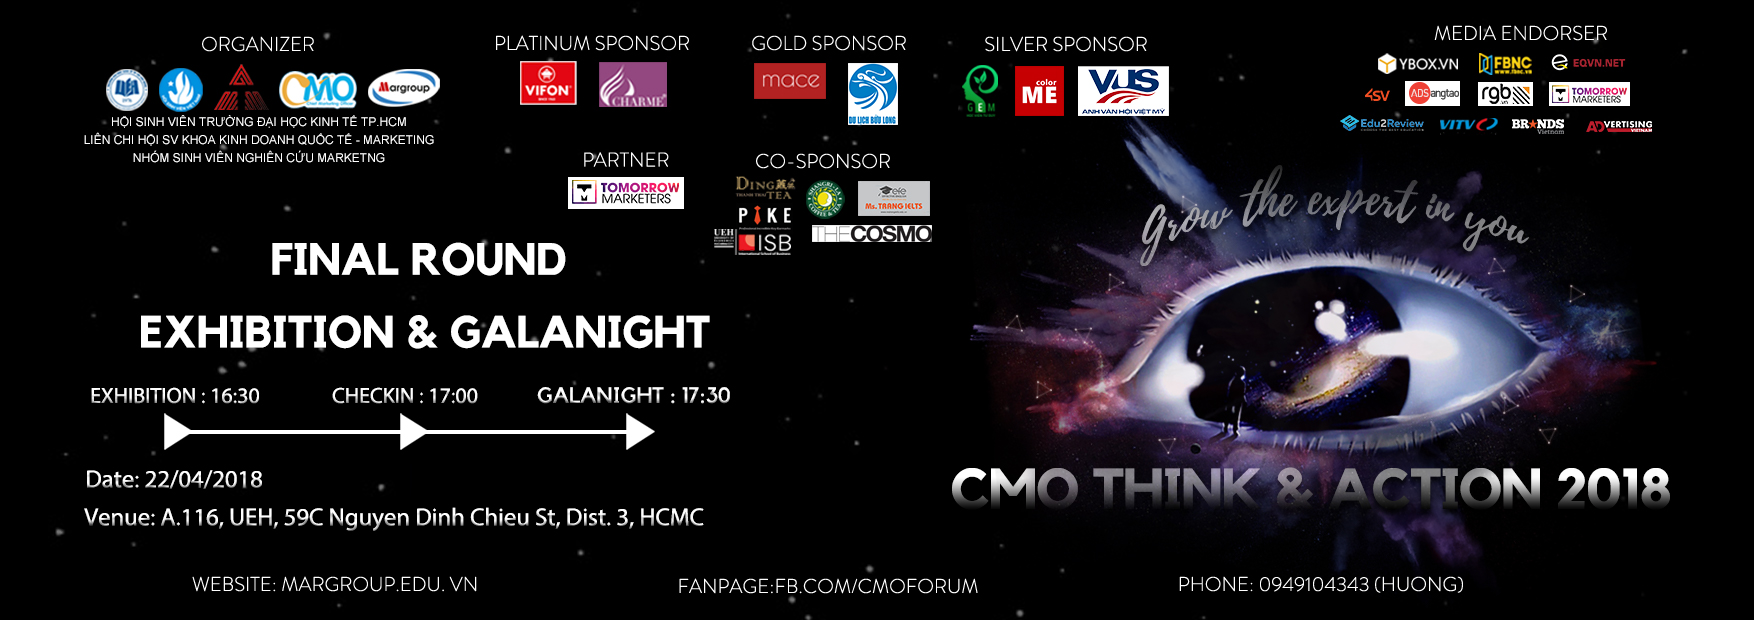 cmo_think_action_2018_gala_event